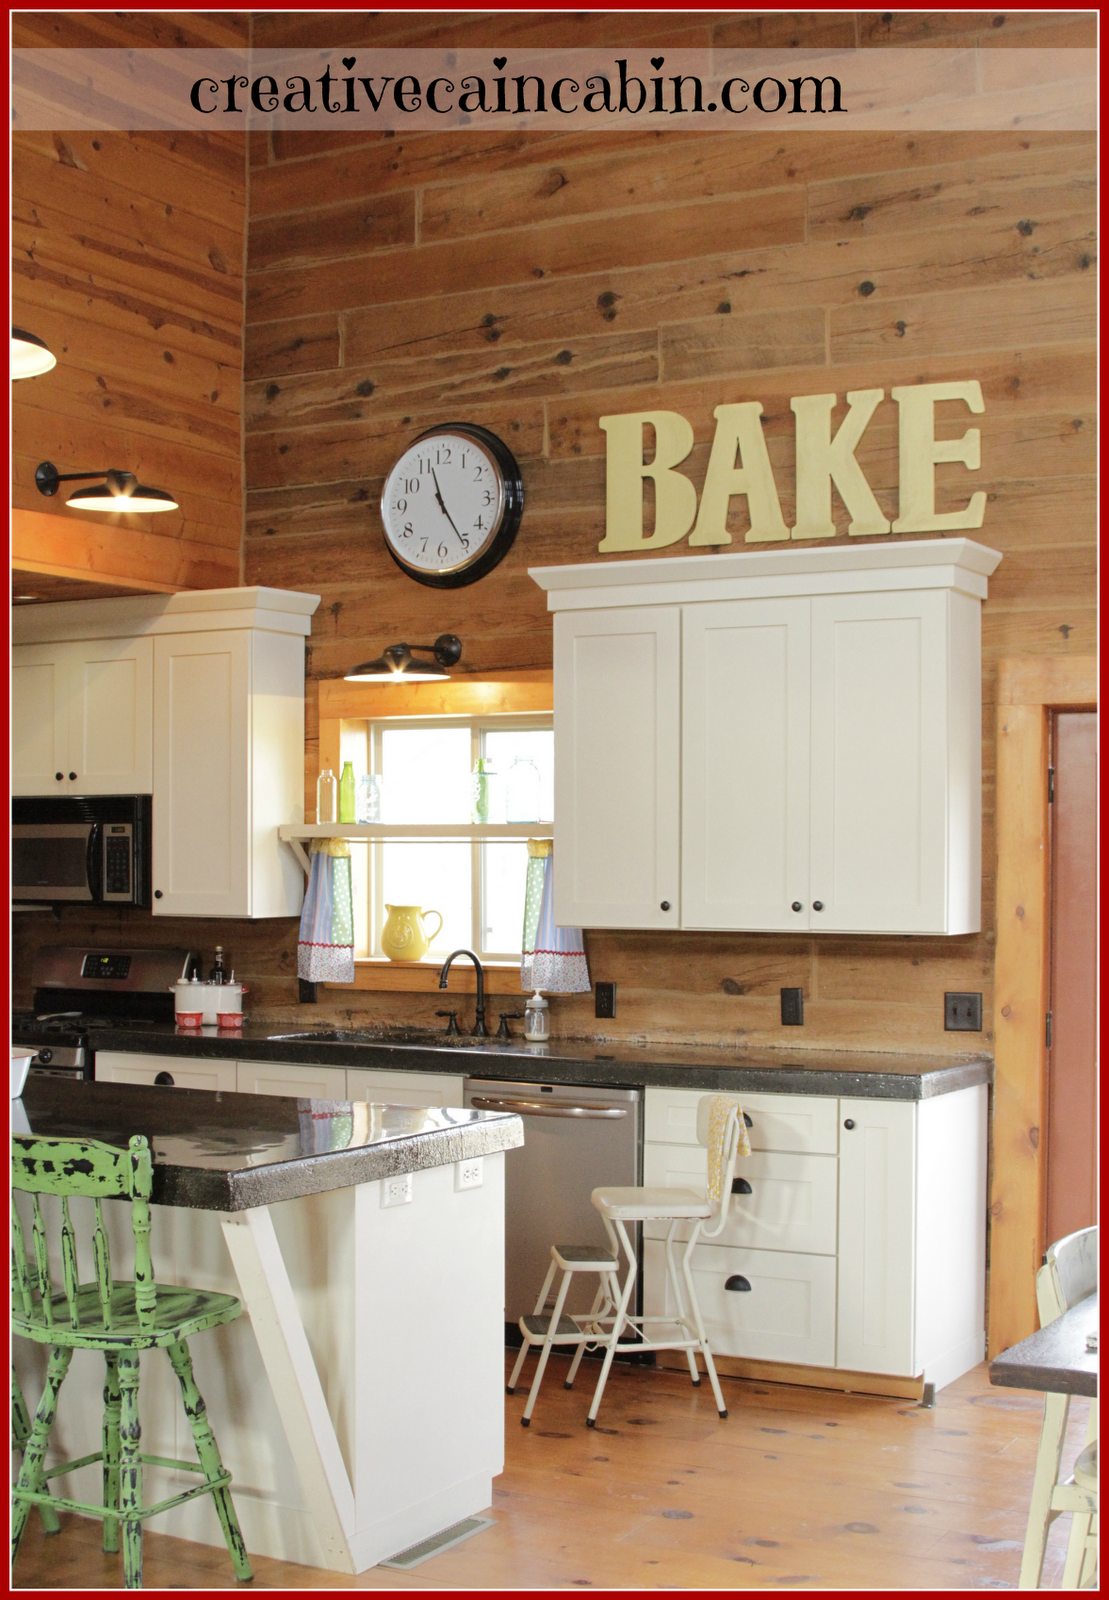 BAKE  Kitchen Letters, Would Be Perfect For My Kitchen.